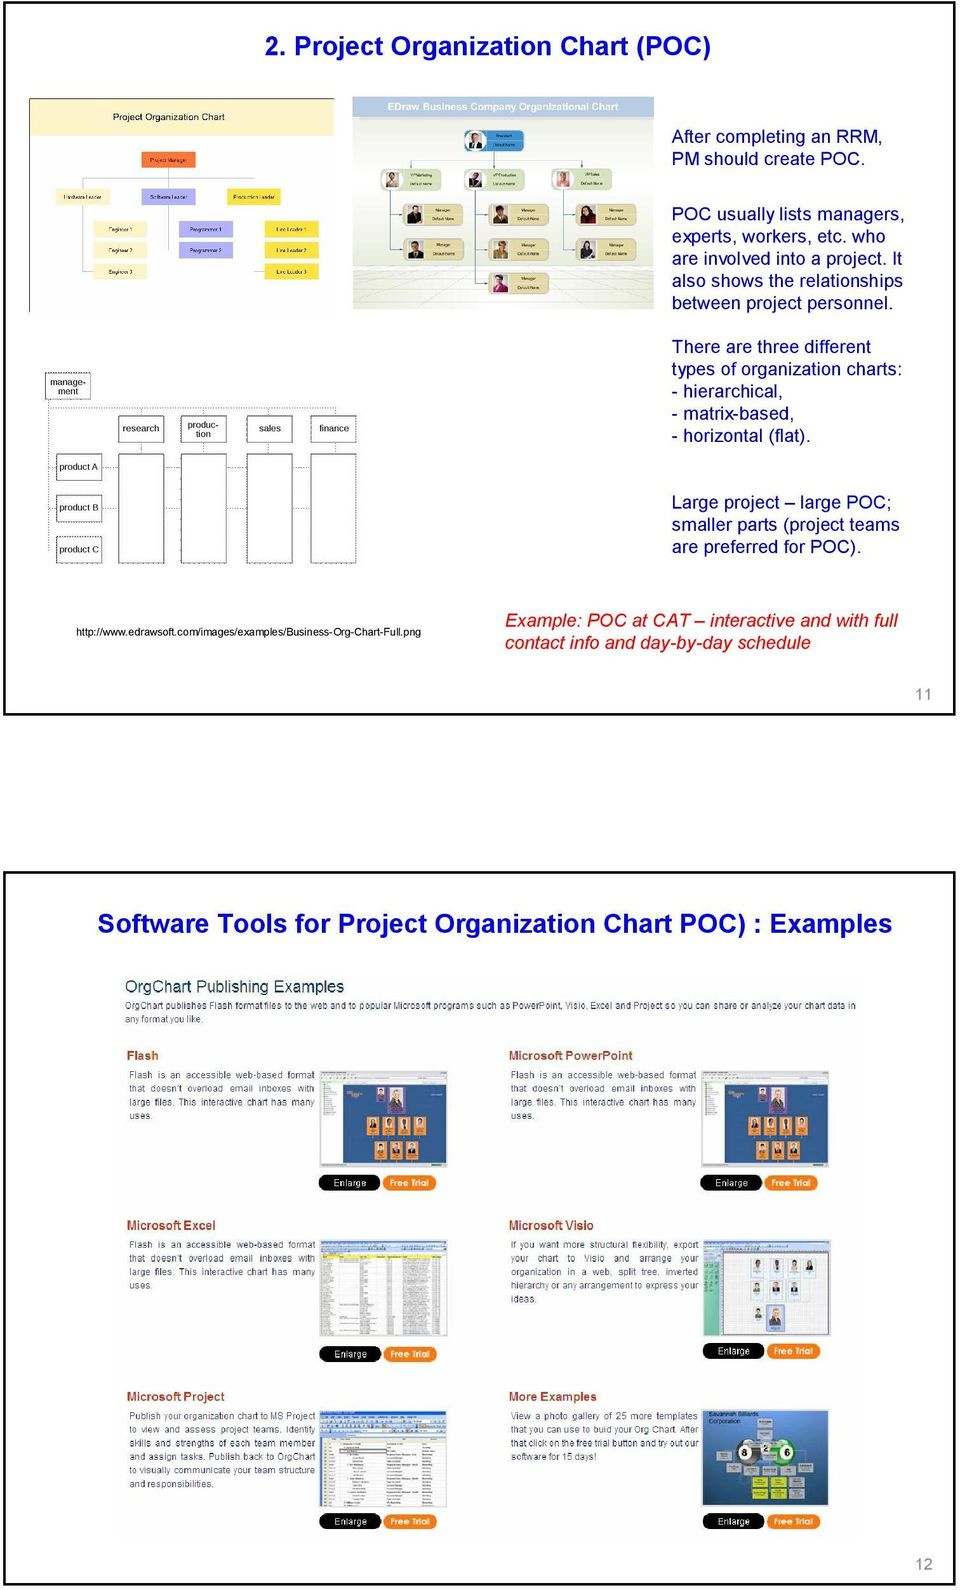 There are three different types of organization charts: - hierarchical, - matrix-based, - horizontal (flat).